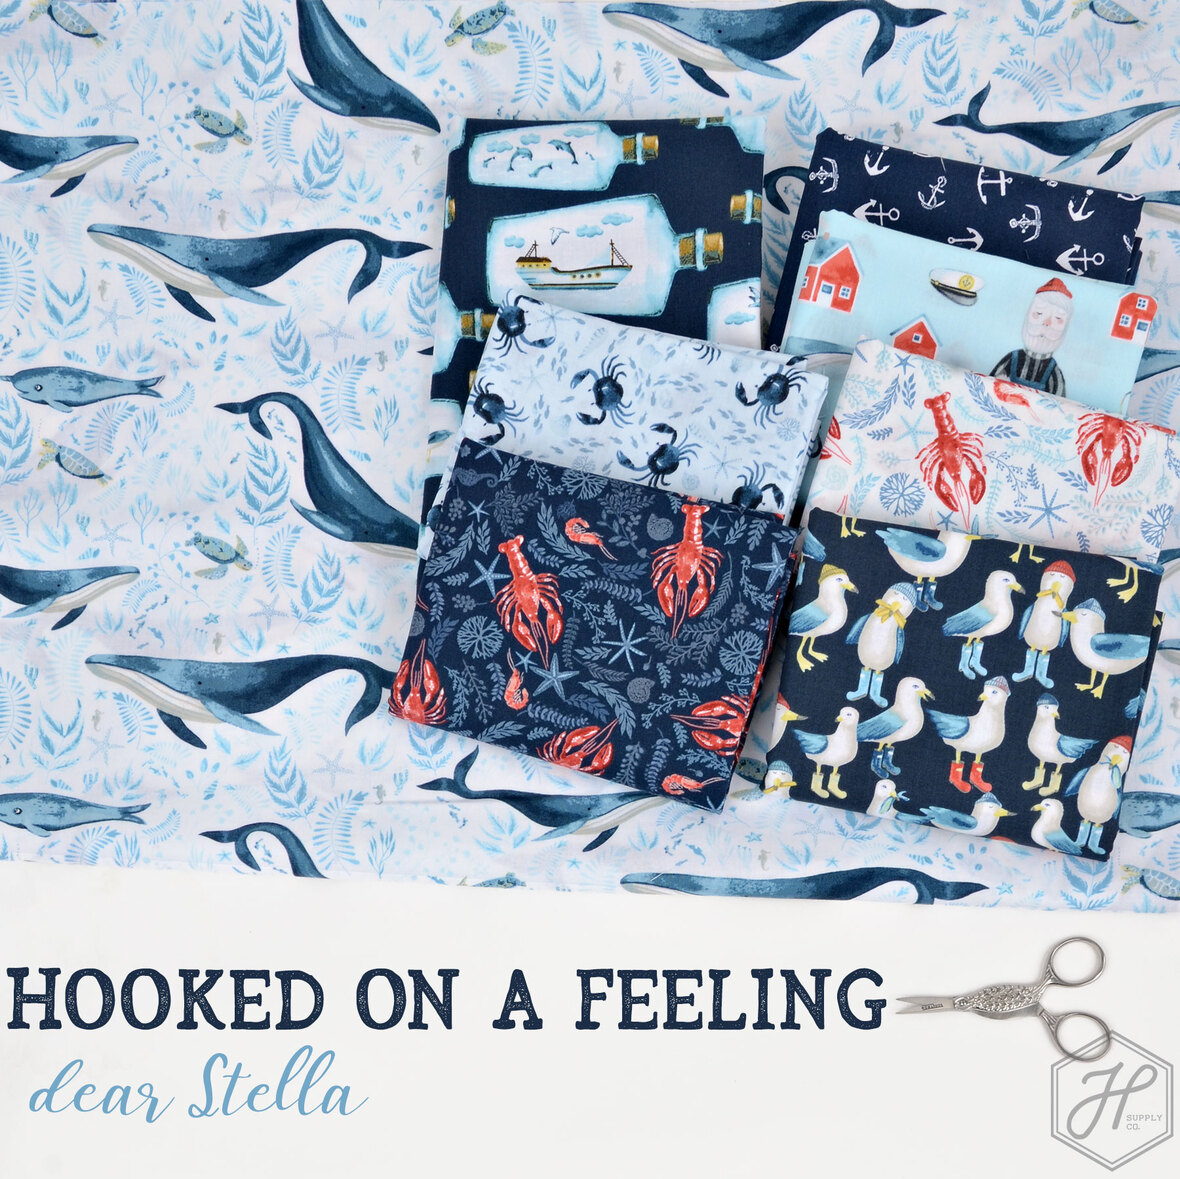 Hooked-on--Feeling-Dear-Stella-Fabric-at-Hawthorne-Supply-Co